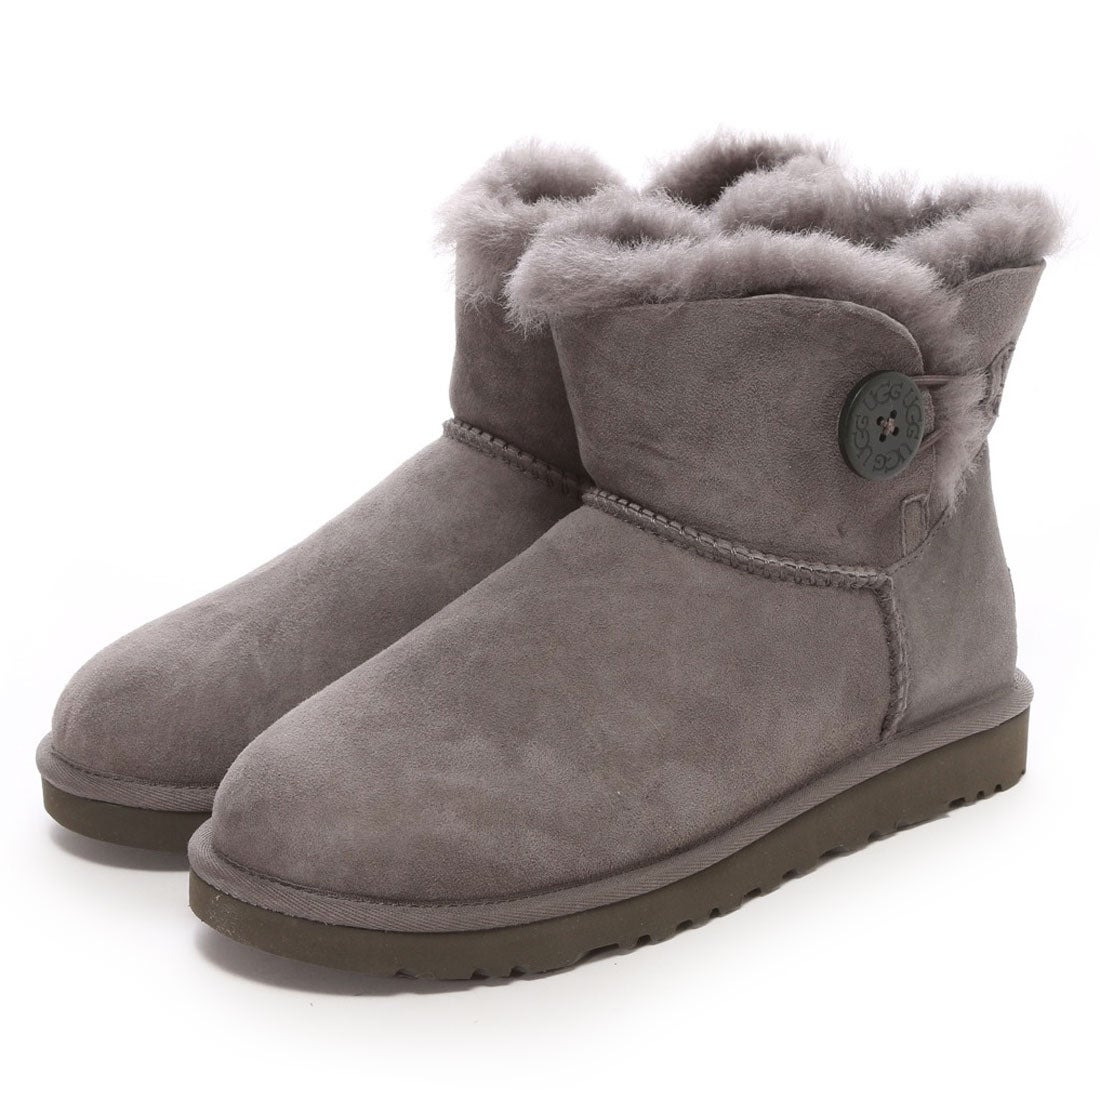 【SALE 20%OFF】アグ UGG Mini Bailey Button(グレー) レディース